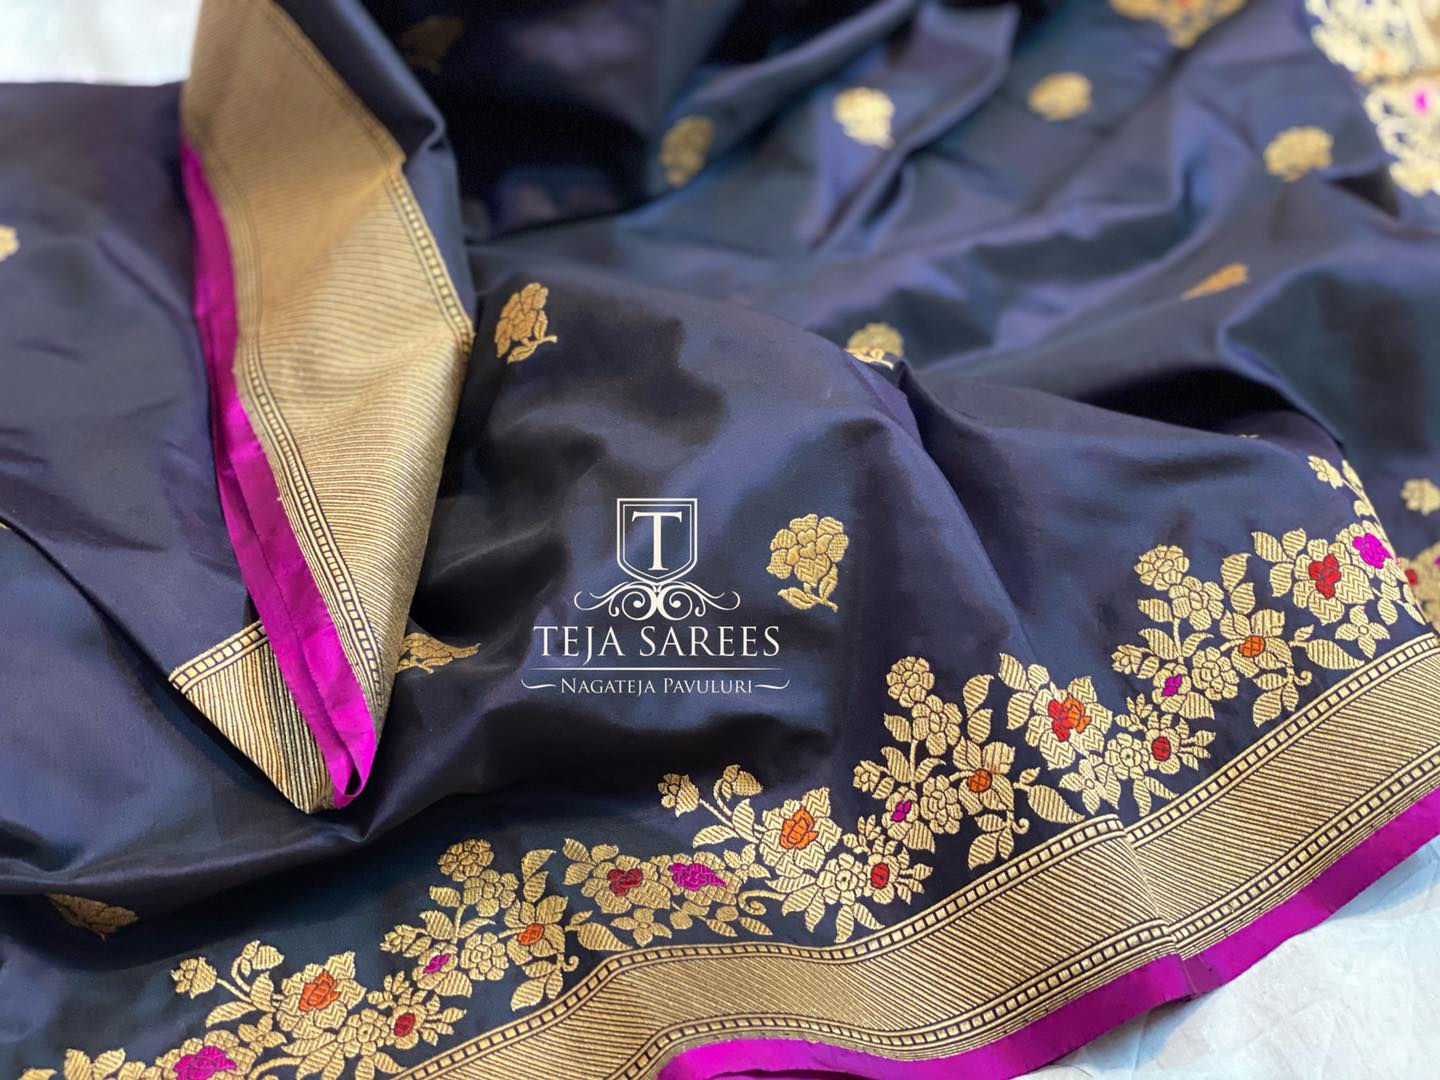 TS-SR-526 Available Hand picked banarasi kathan Silk Saree with intricate Kaduwa weaving from Team Teja !! For orders/queries Call/ what's app  on 8341382382 Mail  tejasarees@yahoo.com 2021-01-16